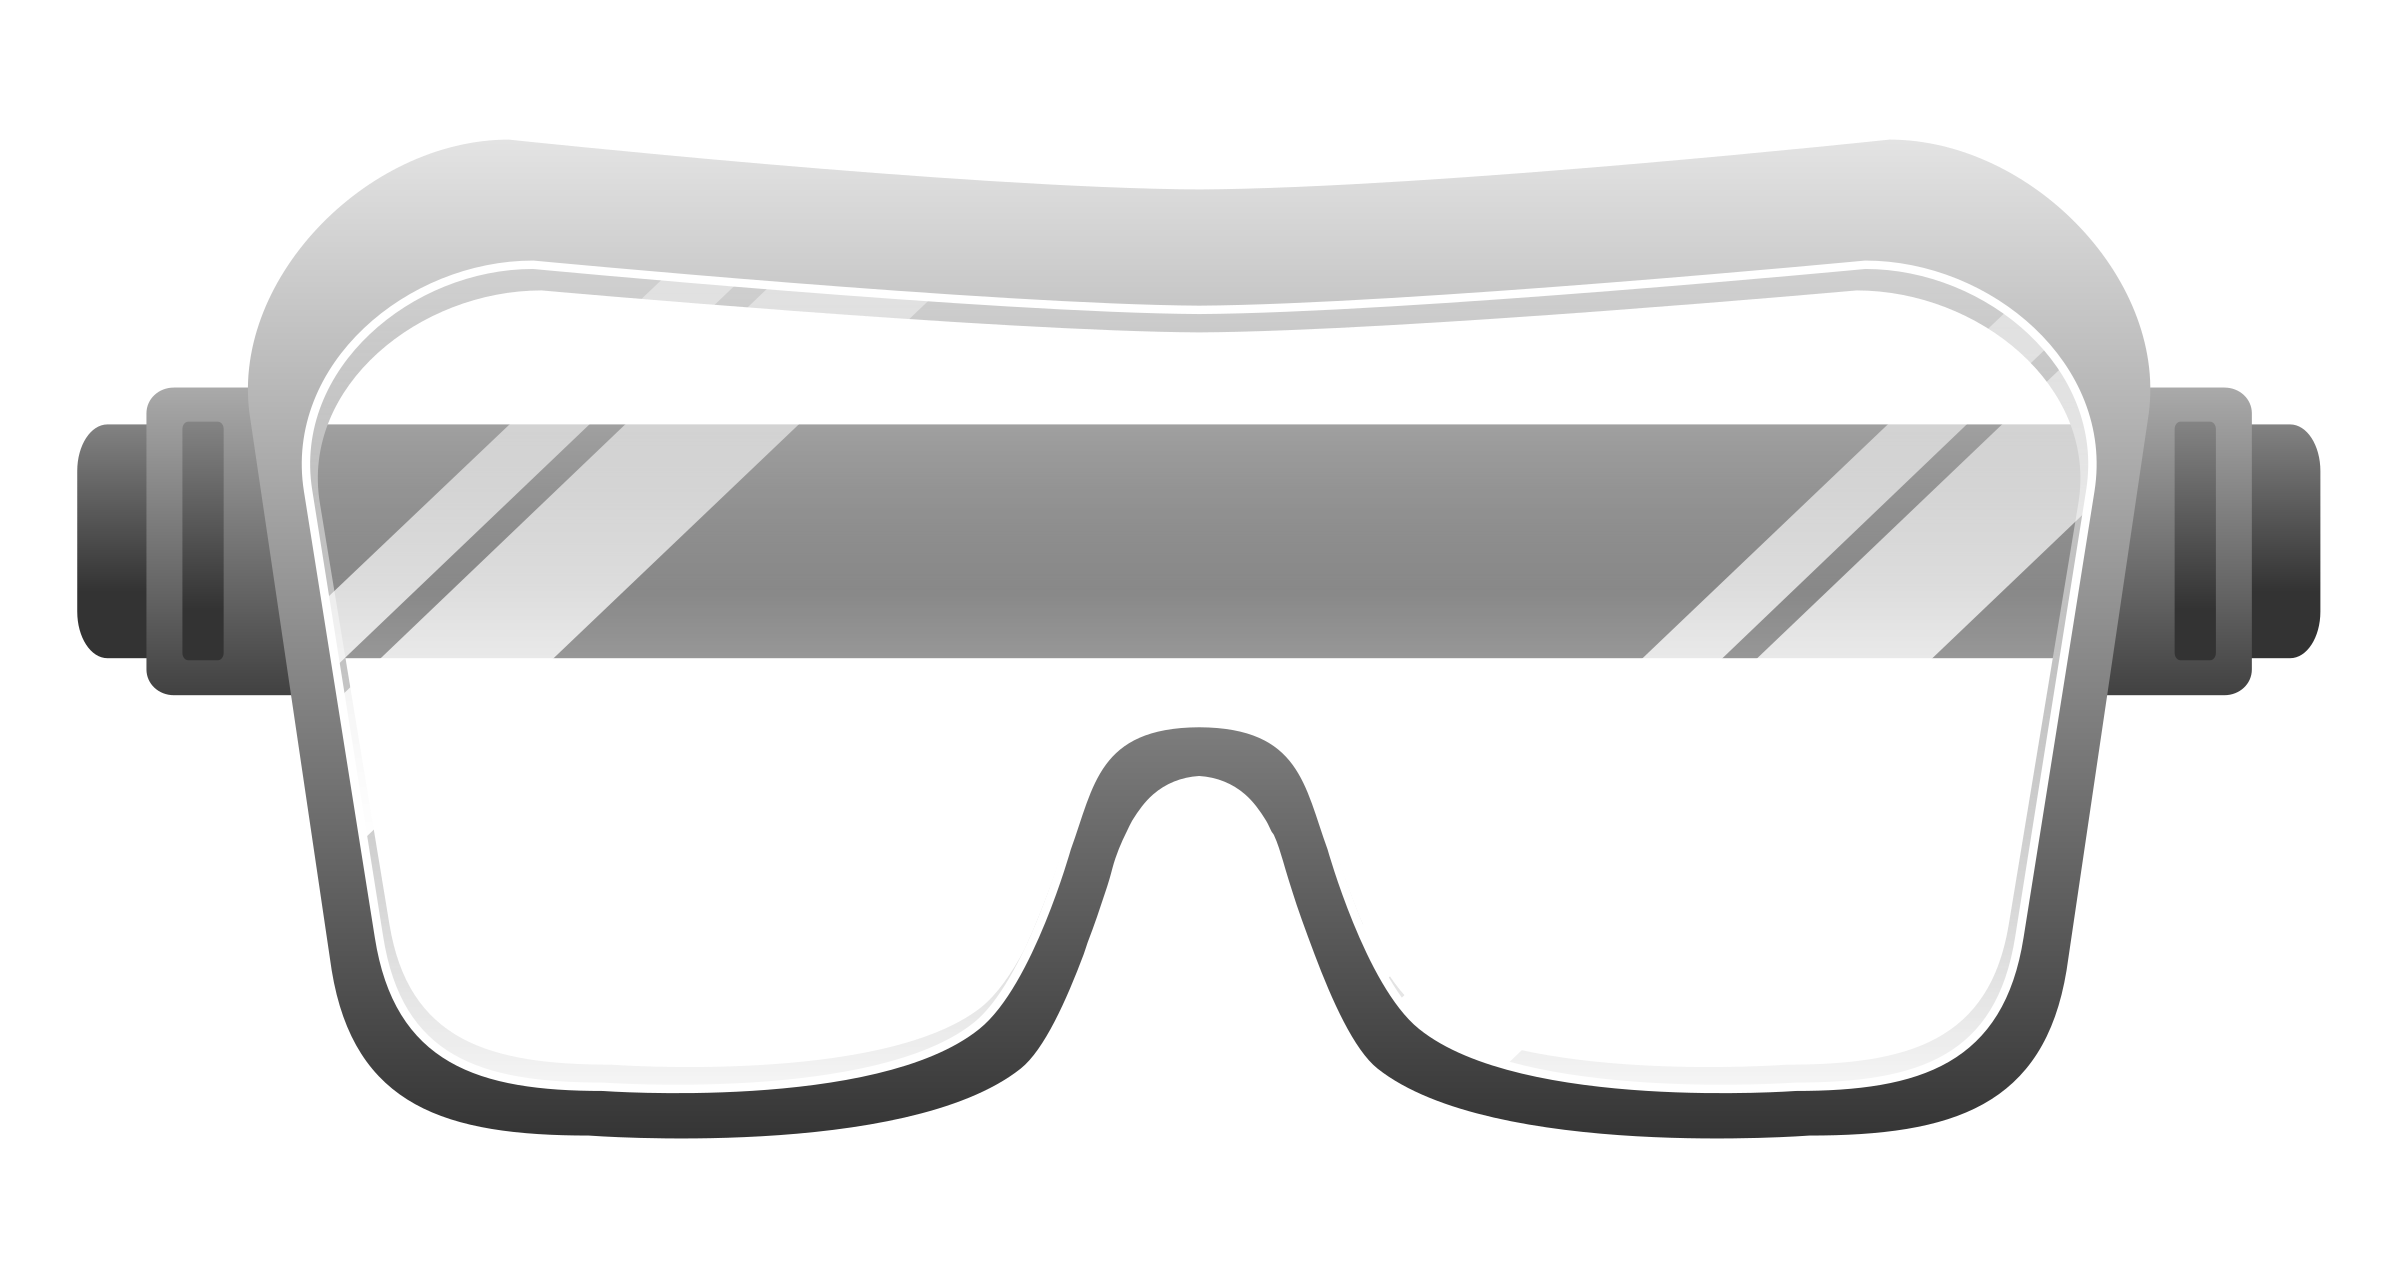 Safety glasses png. Collection of clipart